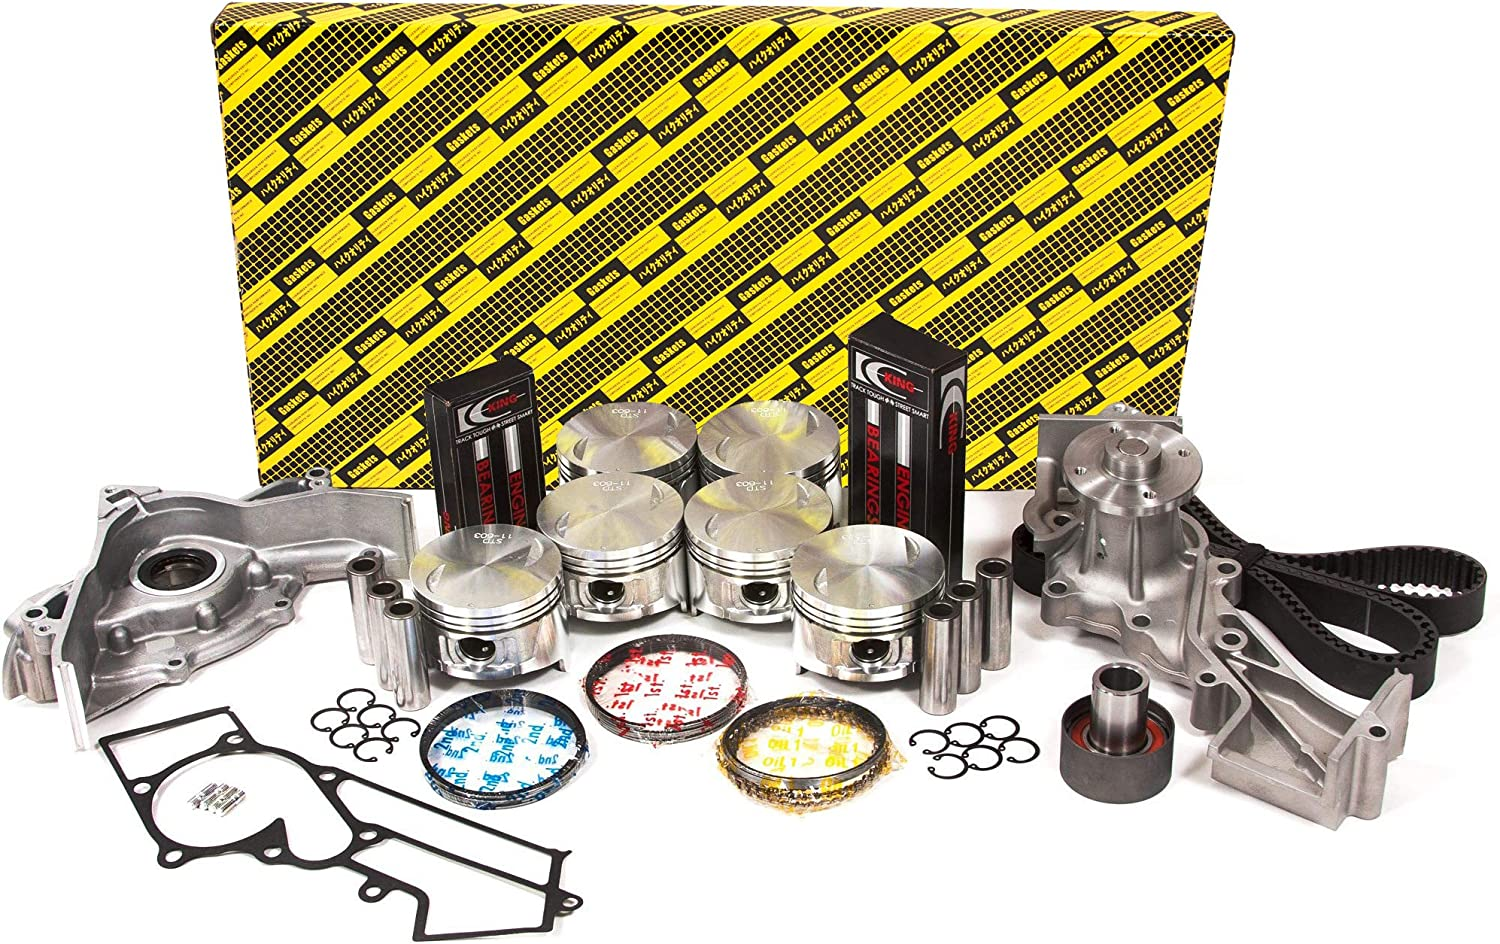 Evergreen OK3011 2 1 Fits 87-93 D21 Nissan specialty shop 3. Max 62% OFF Pathfinder 4WD